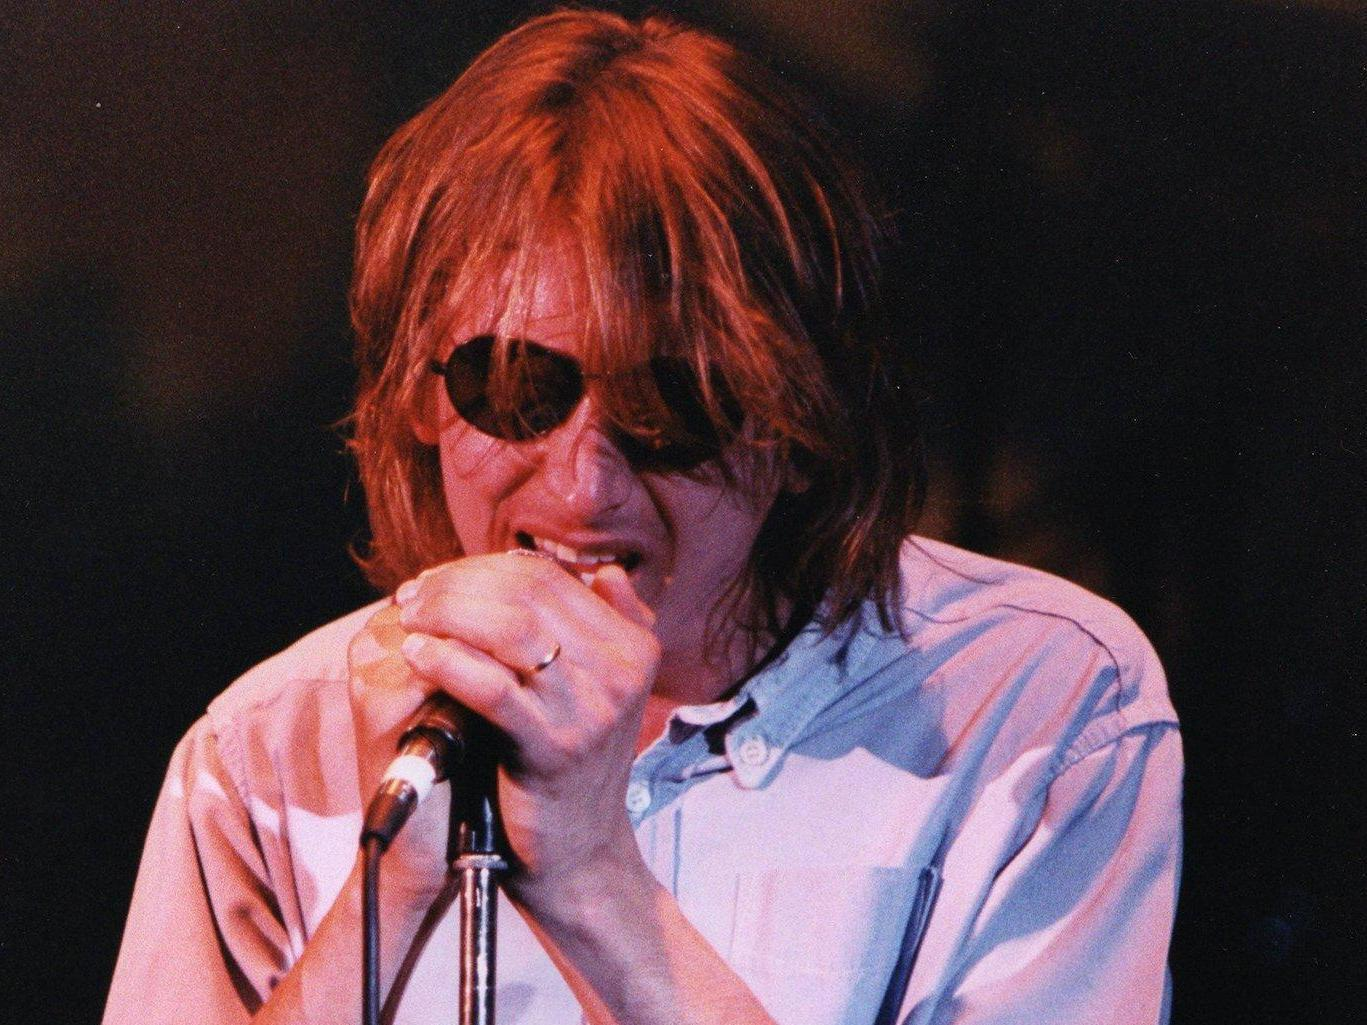 Mark Hollis death: Talk Talk singer hailed as 'musical genius' by bandmates after death, aged 64